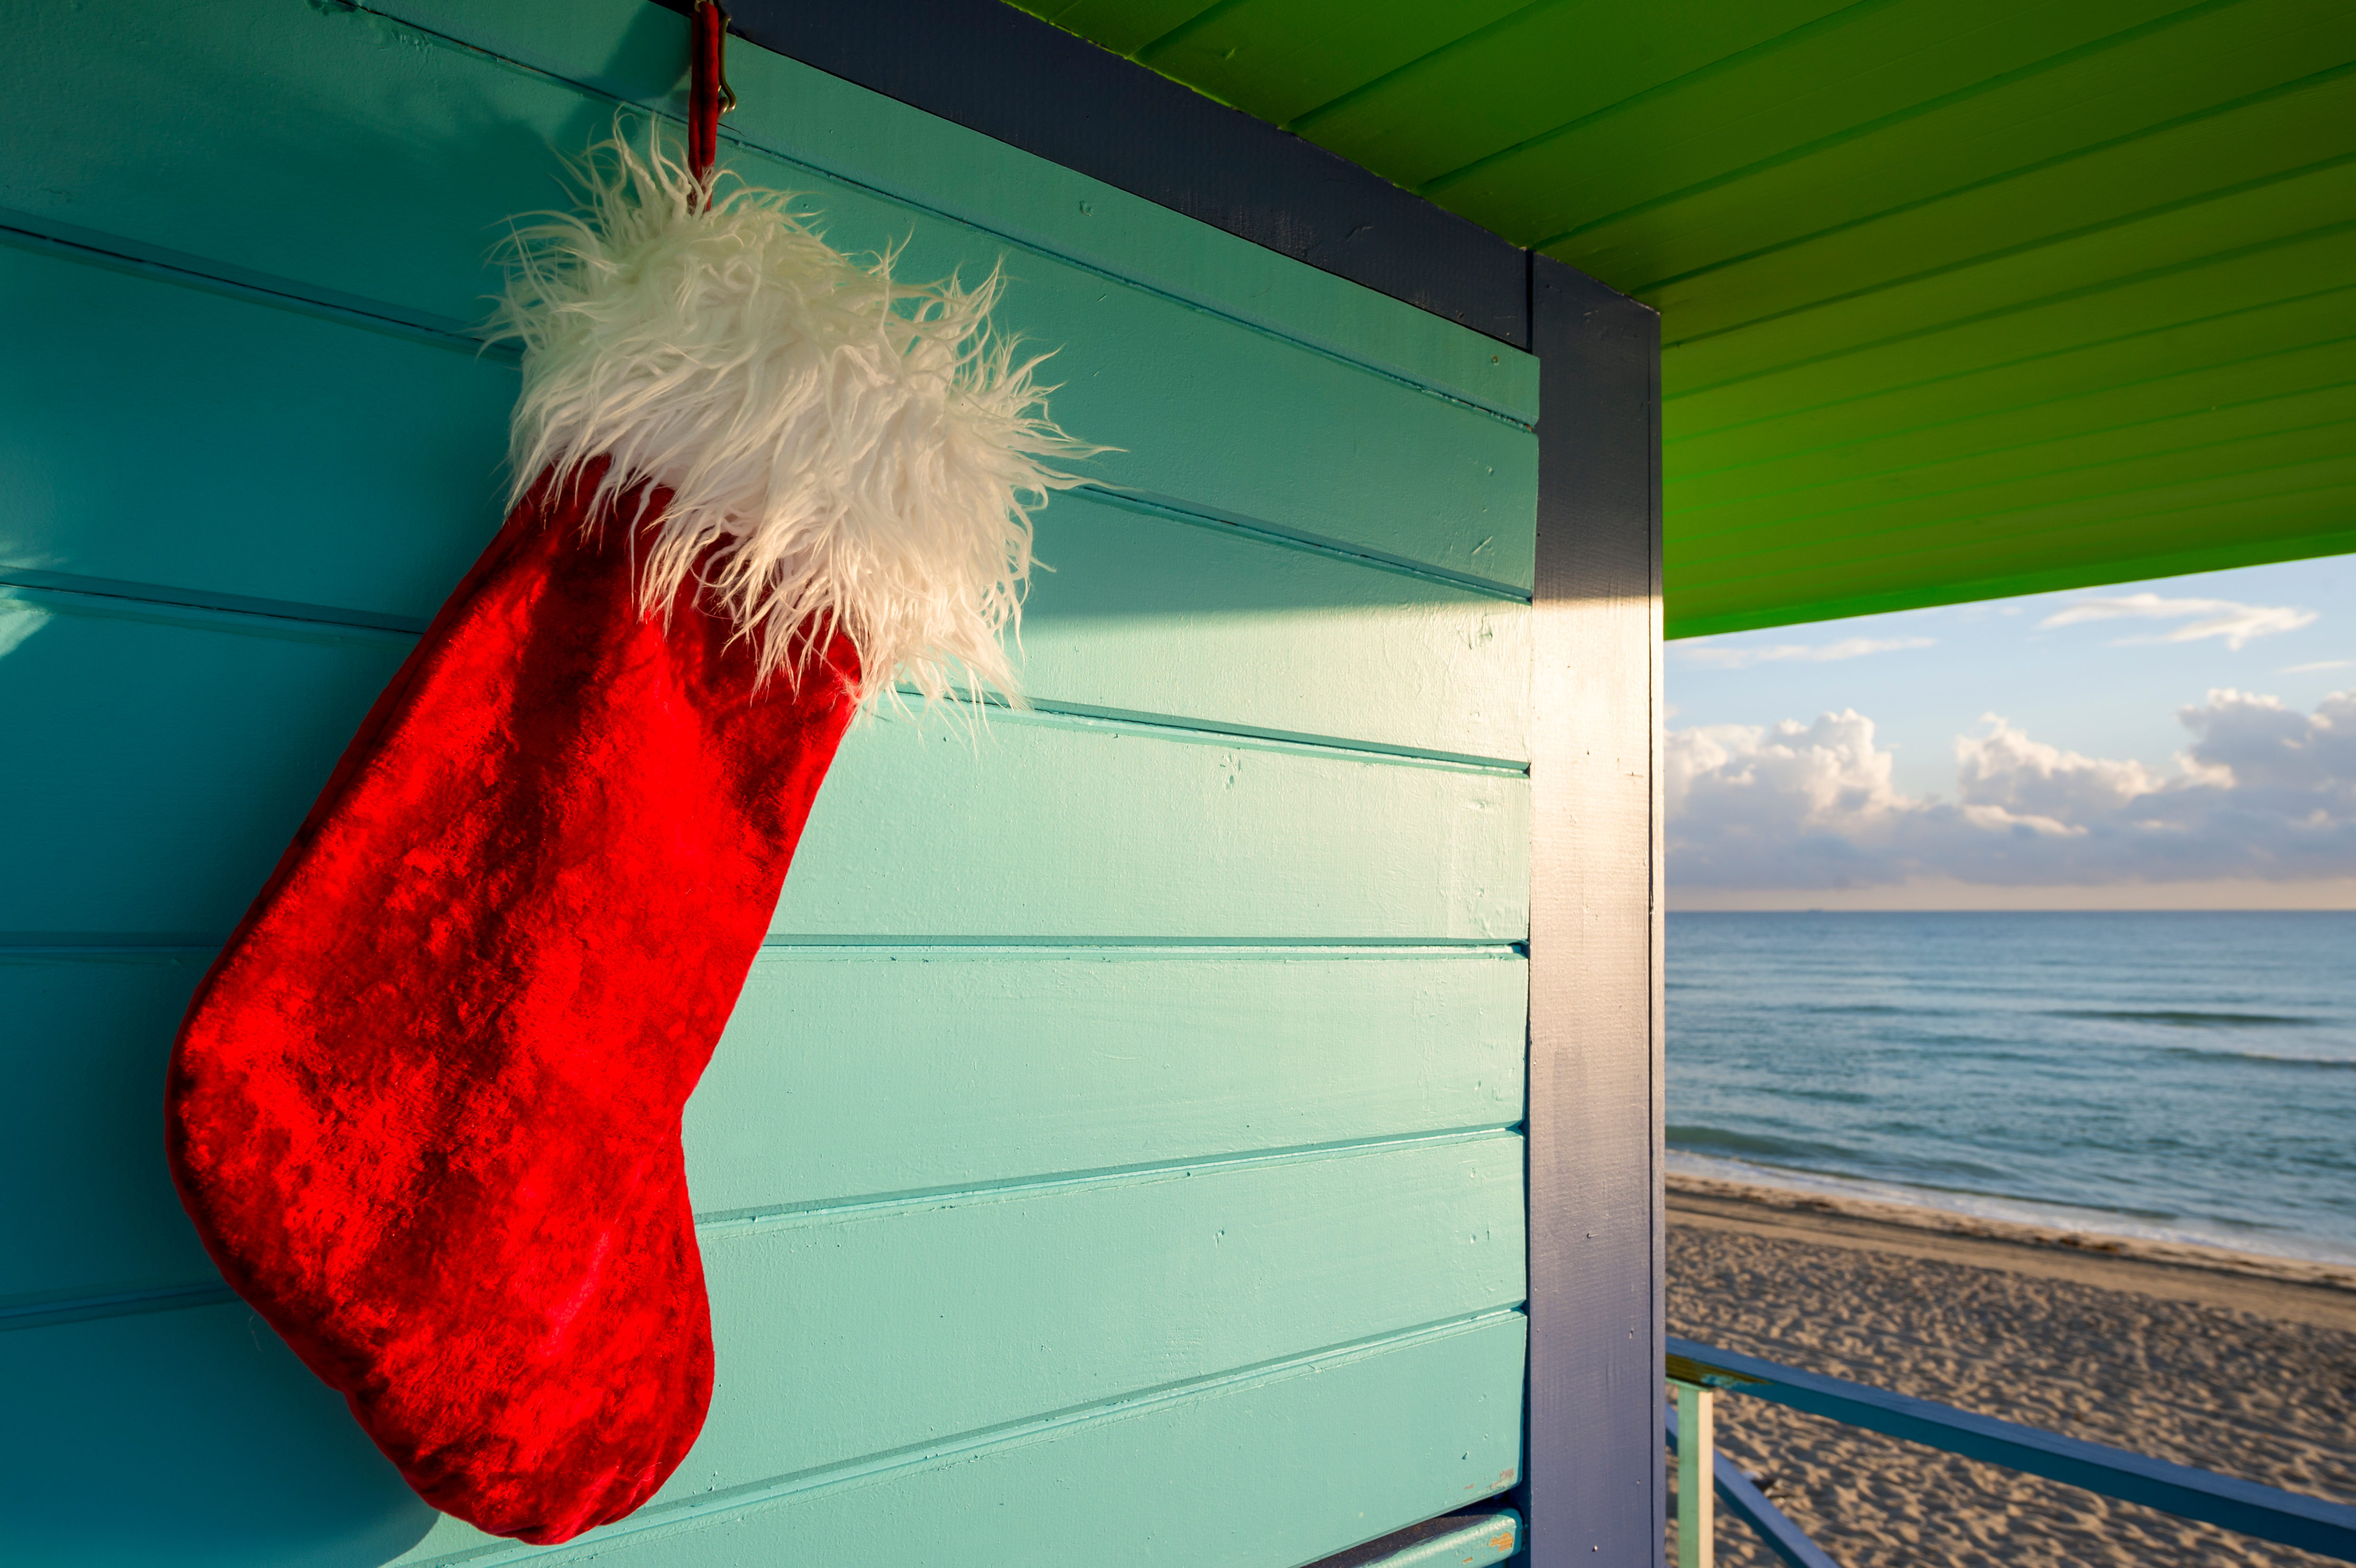 It S Not Too Late 10 Last Minute Holiday Deals And How To Find Them Airfarewatchdog Blog